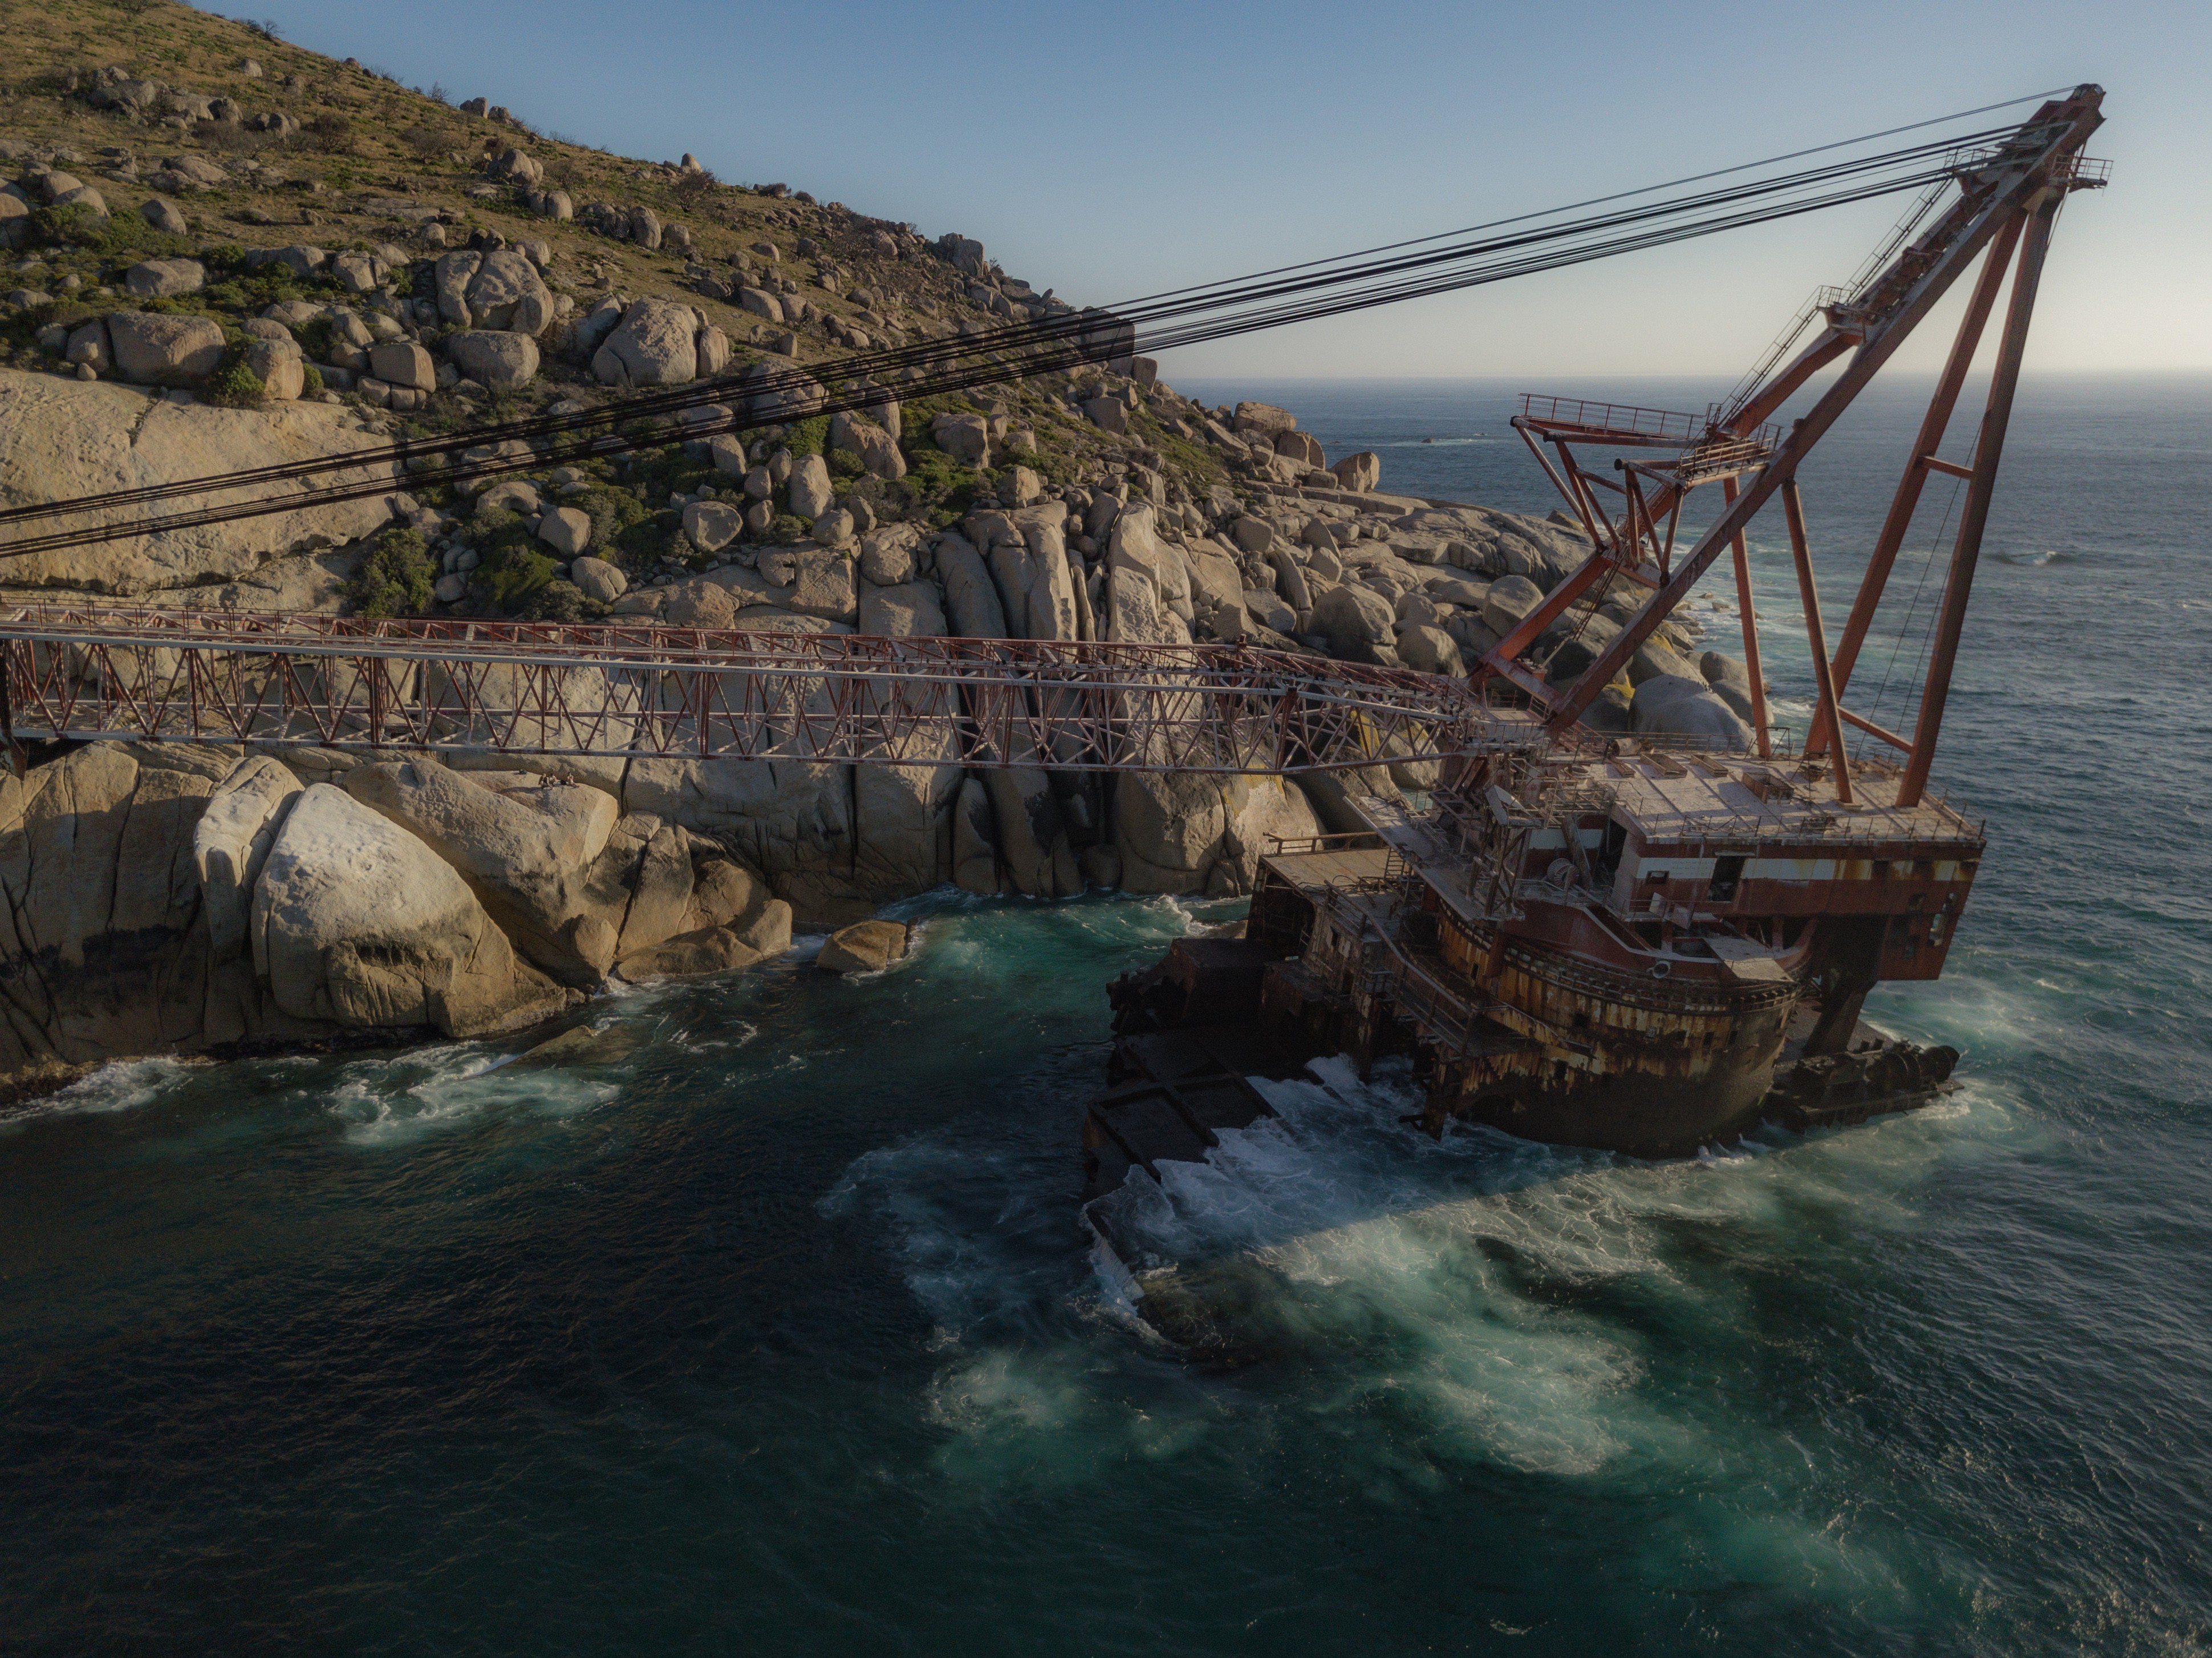 The Most Eerie Shipwrecks in Cape Town, South Africa